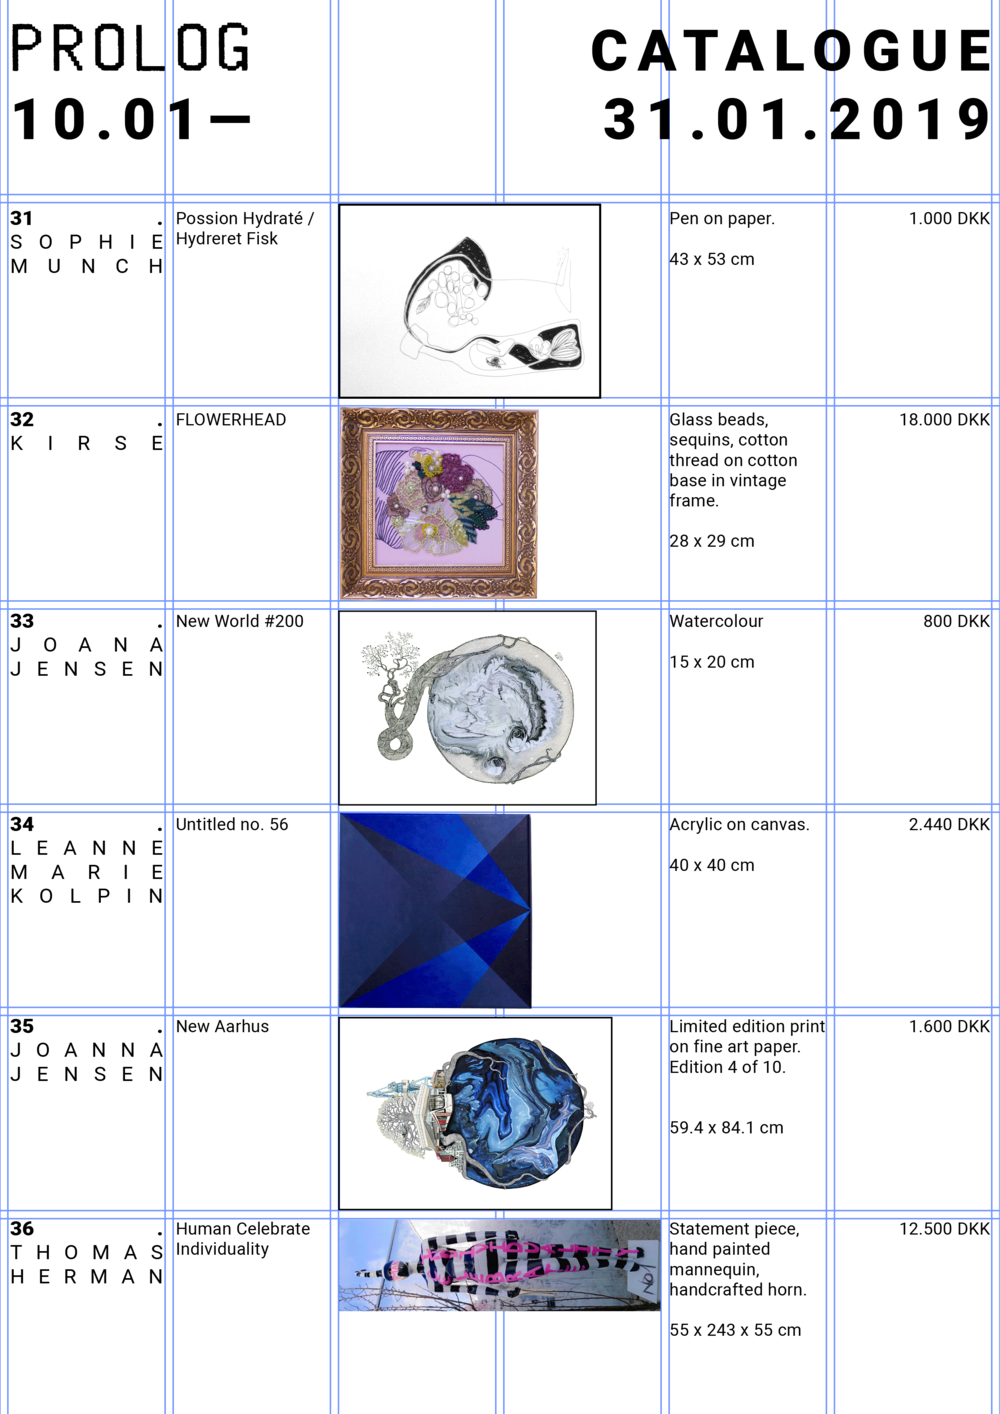 PROLOG-VIEW-CATALOGUEArtboard-6.png